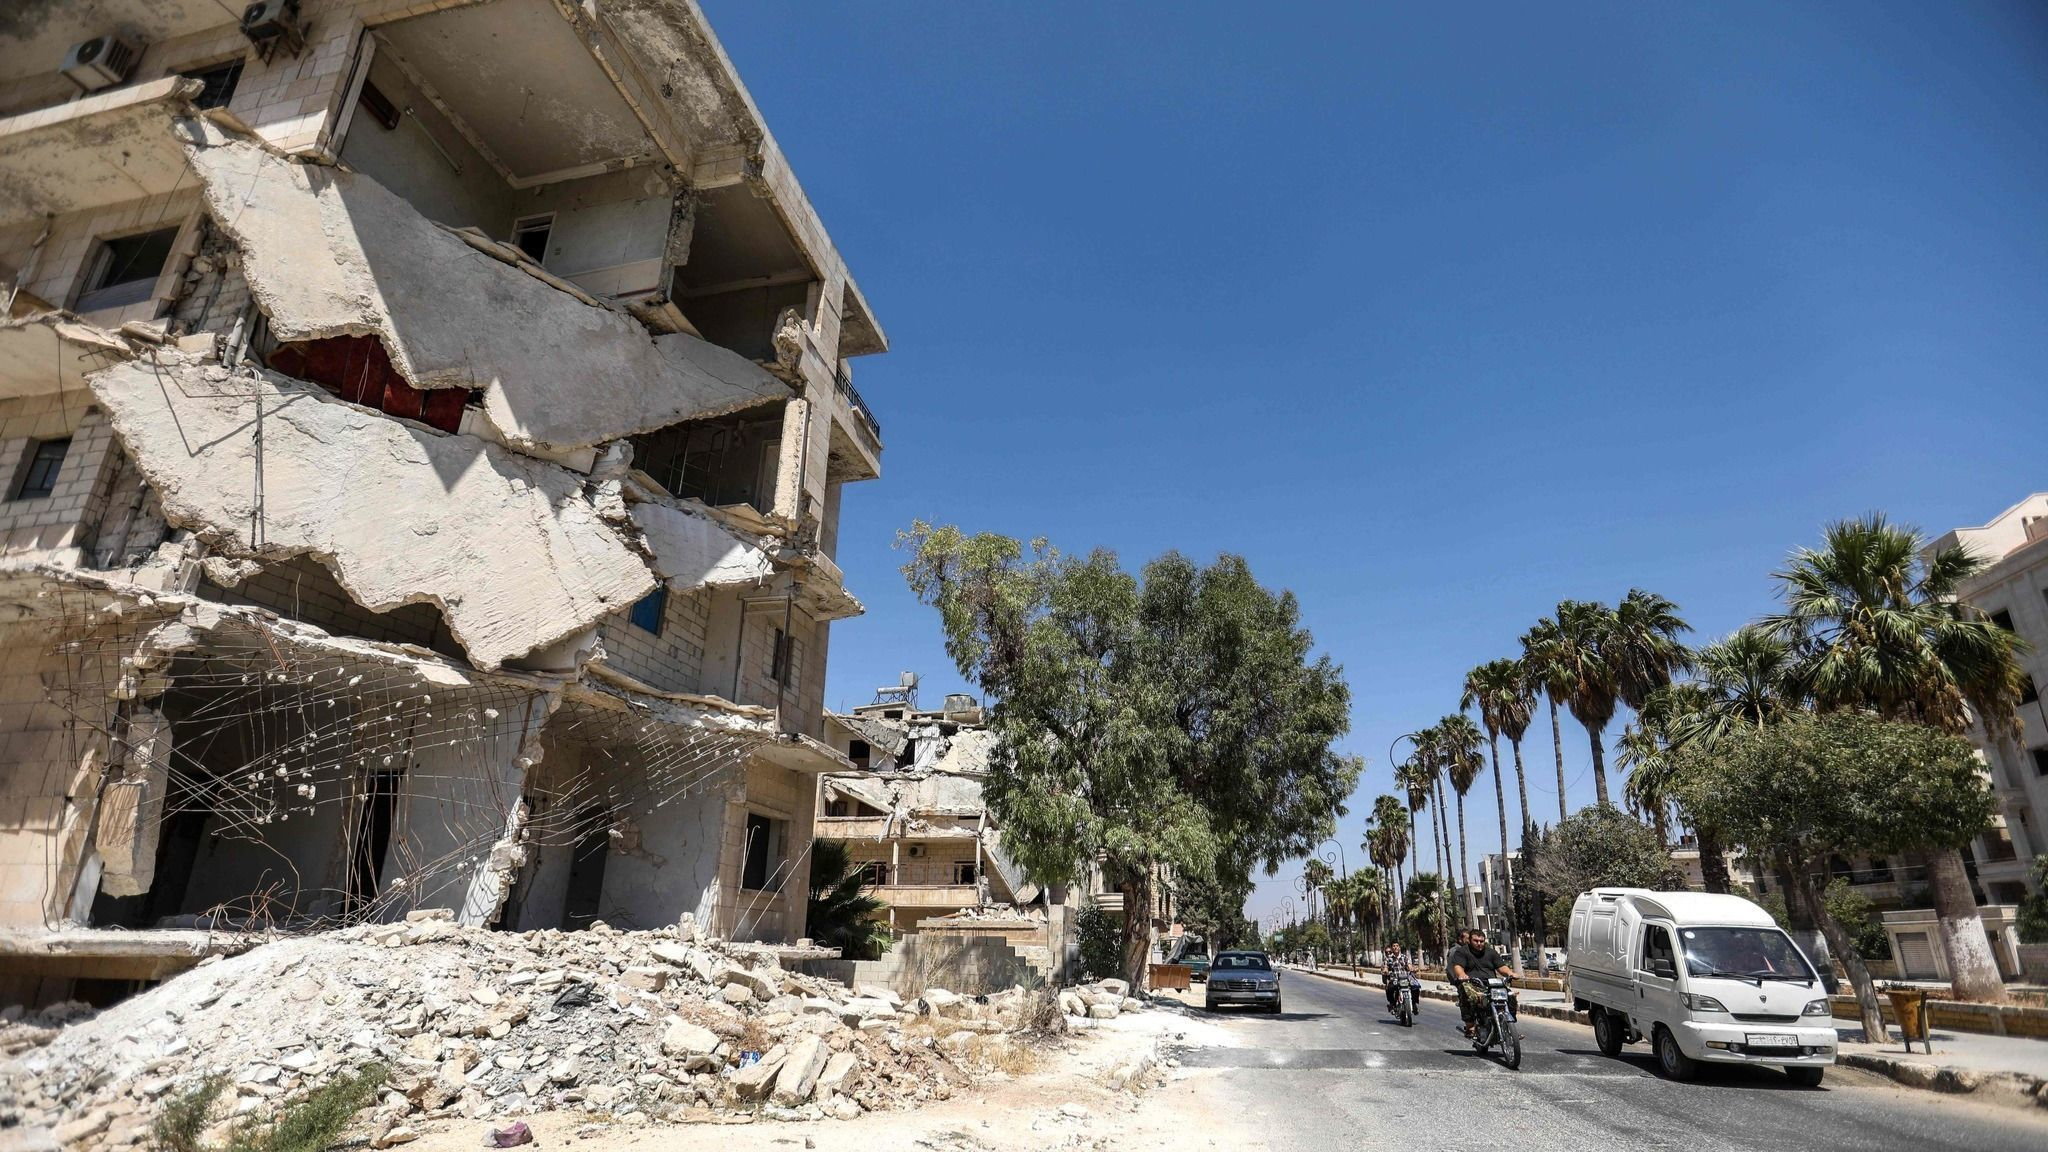 The fate of millions in doubt as Syria prepares for final showdown with rebels